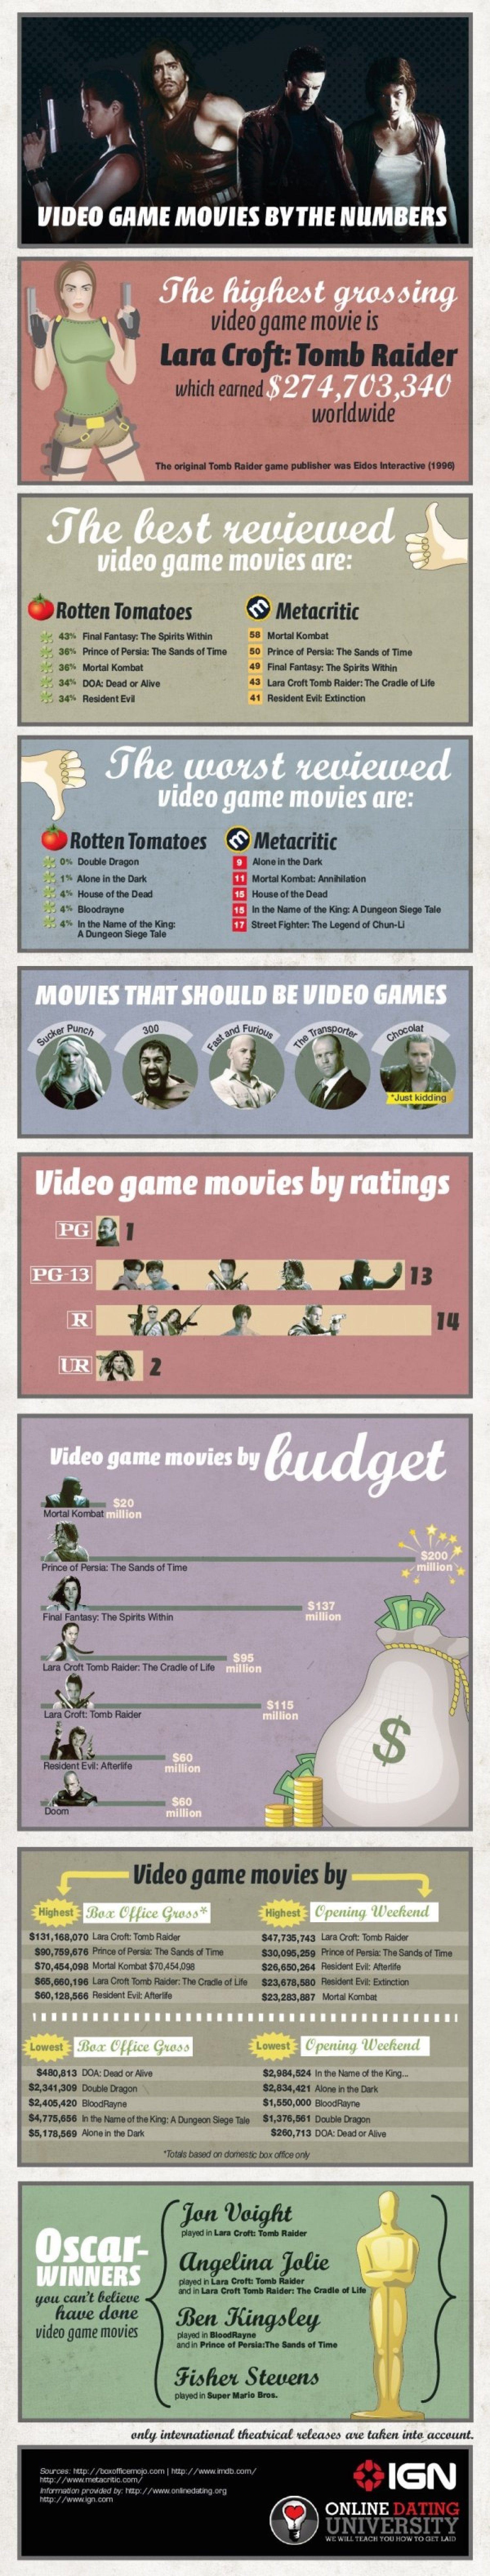 Video Game Movies By the Number Infographic